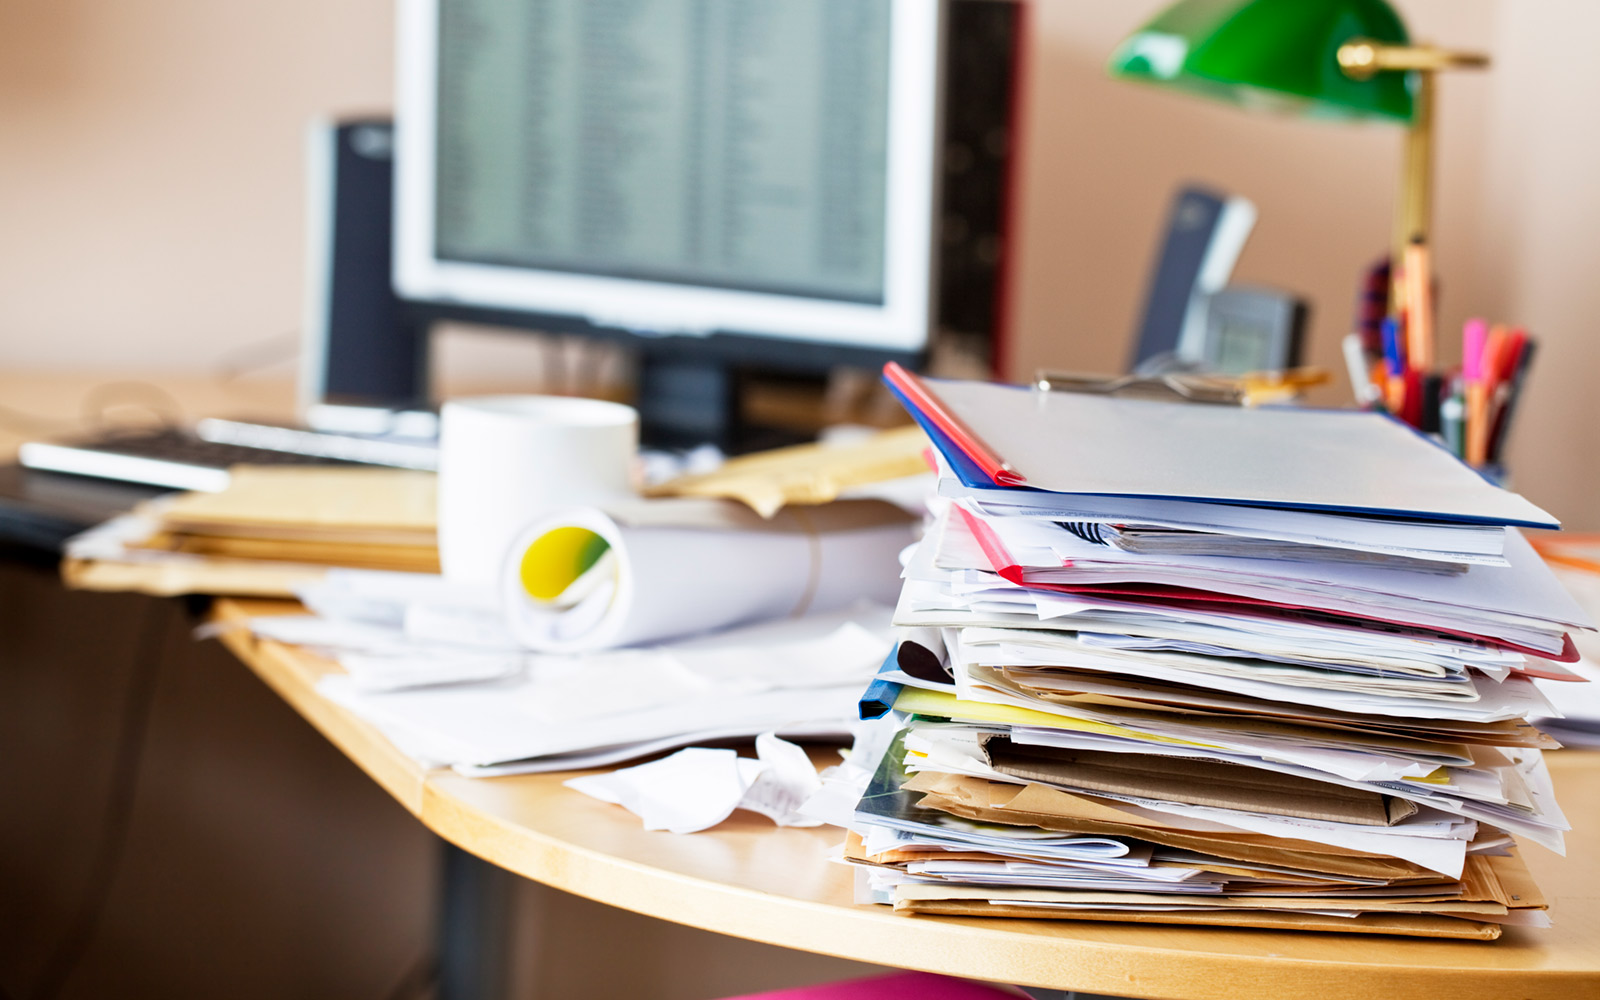 Your Messy Desk Makes Your Co-workers Think of You As 'Cranky,' New Study Finds